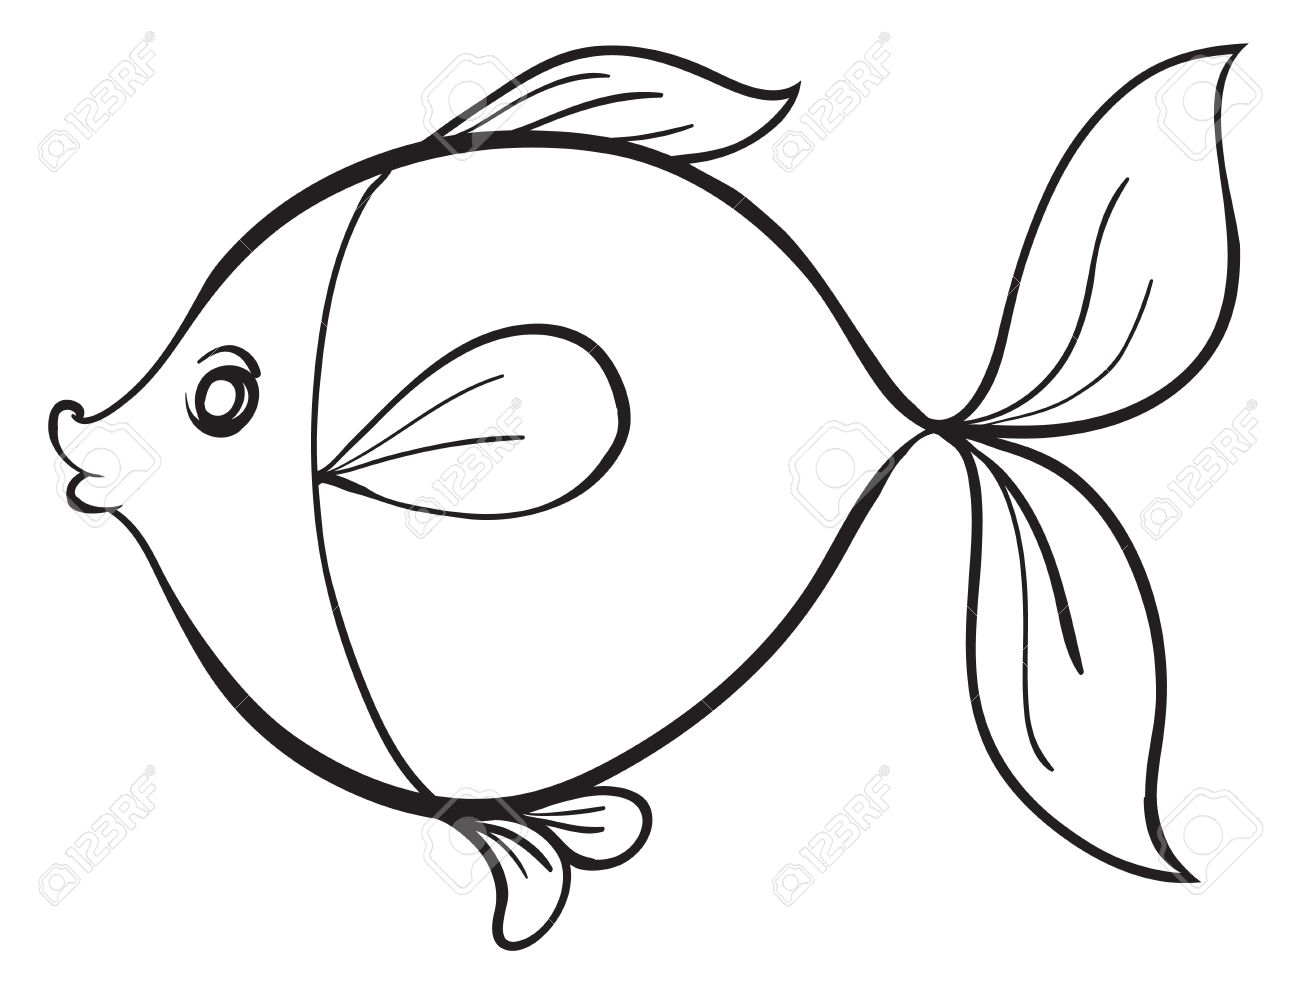 Detailed Illustration Of A Fish Line Art On White Royalty Free Cliparts Vectors And Stock Illustration Image 15667294